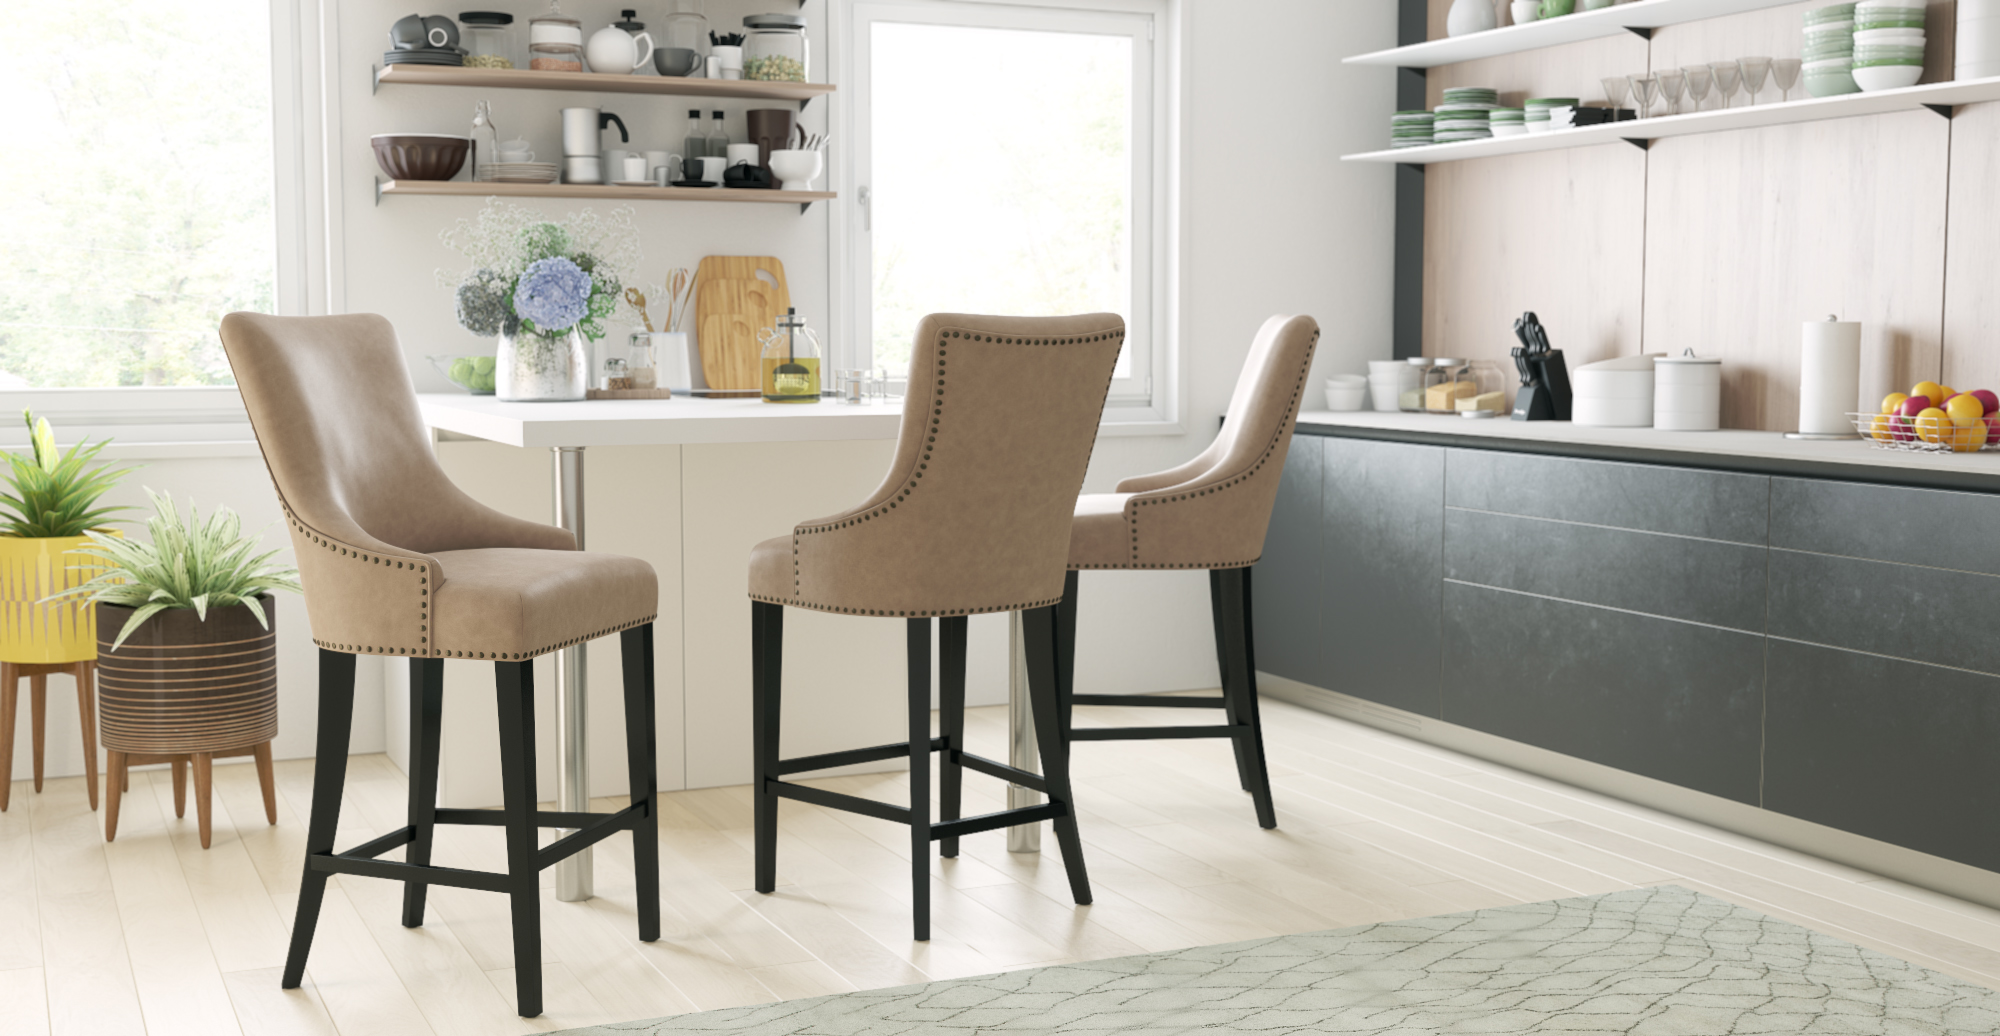 Zoe Leather Bar Stool Low styled in modern contemporary kitchen